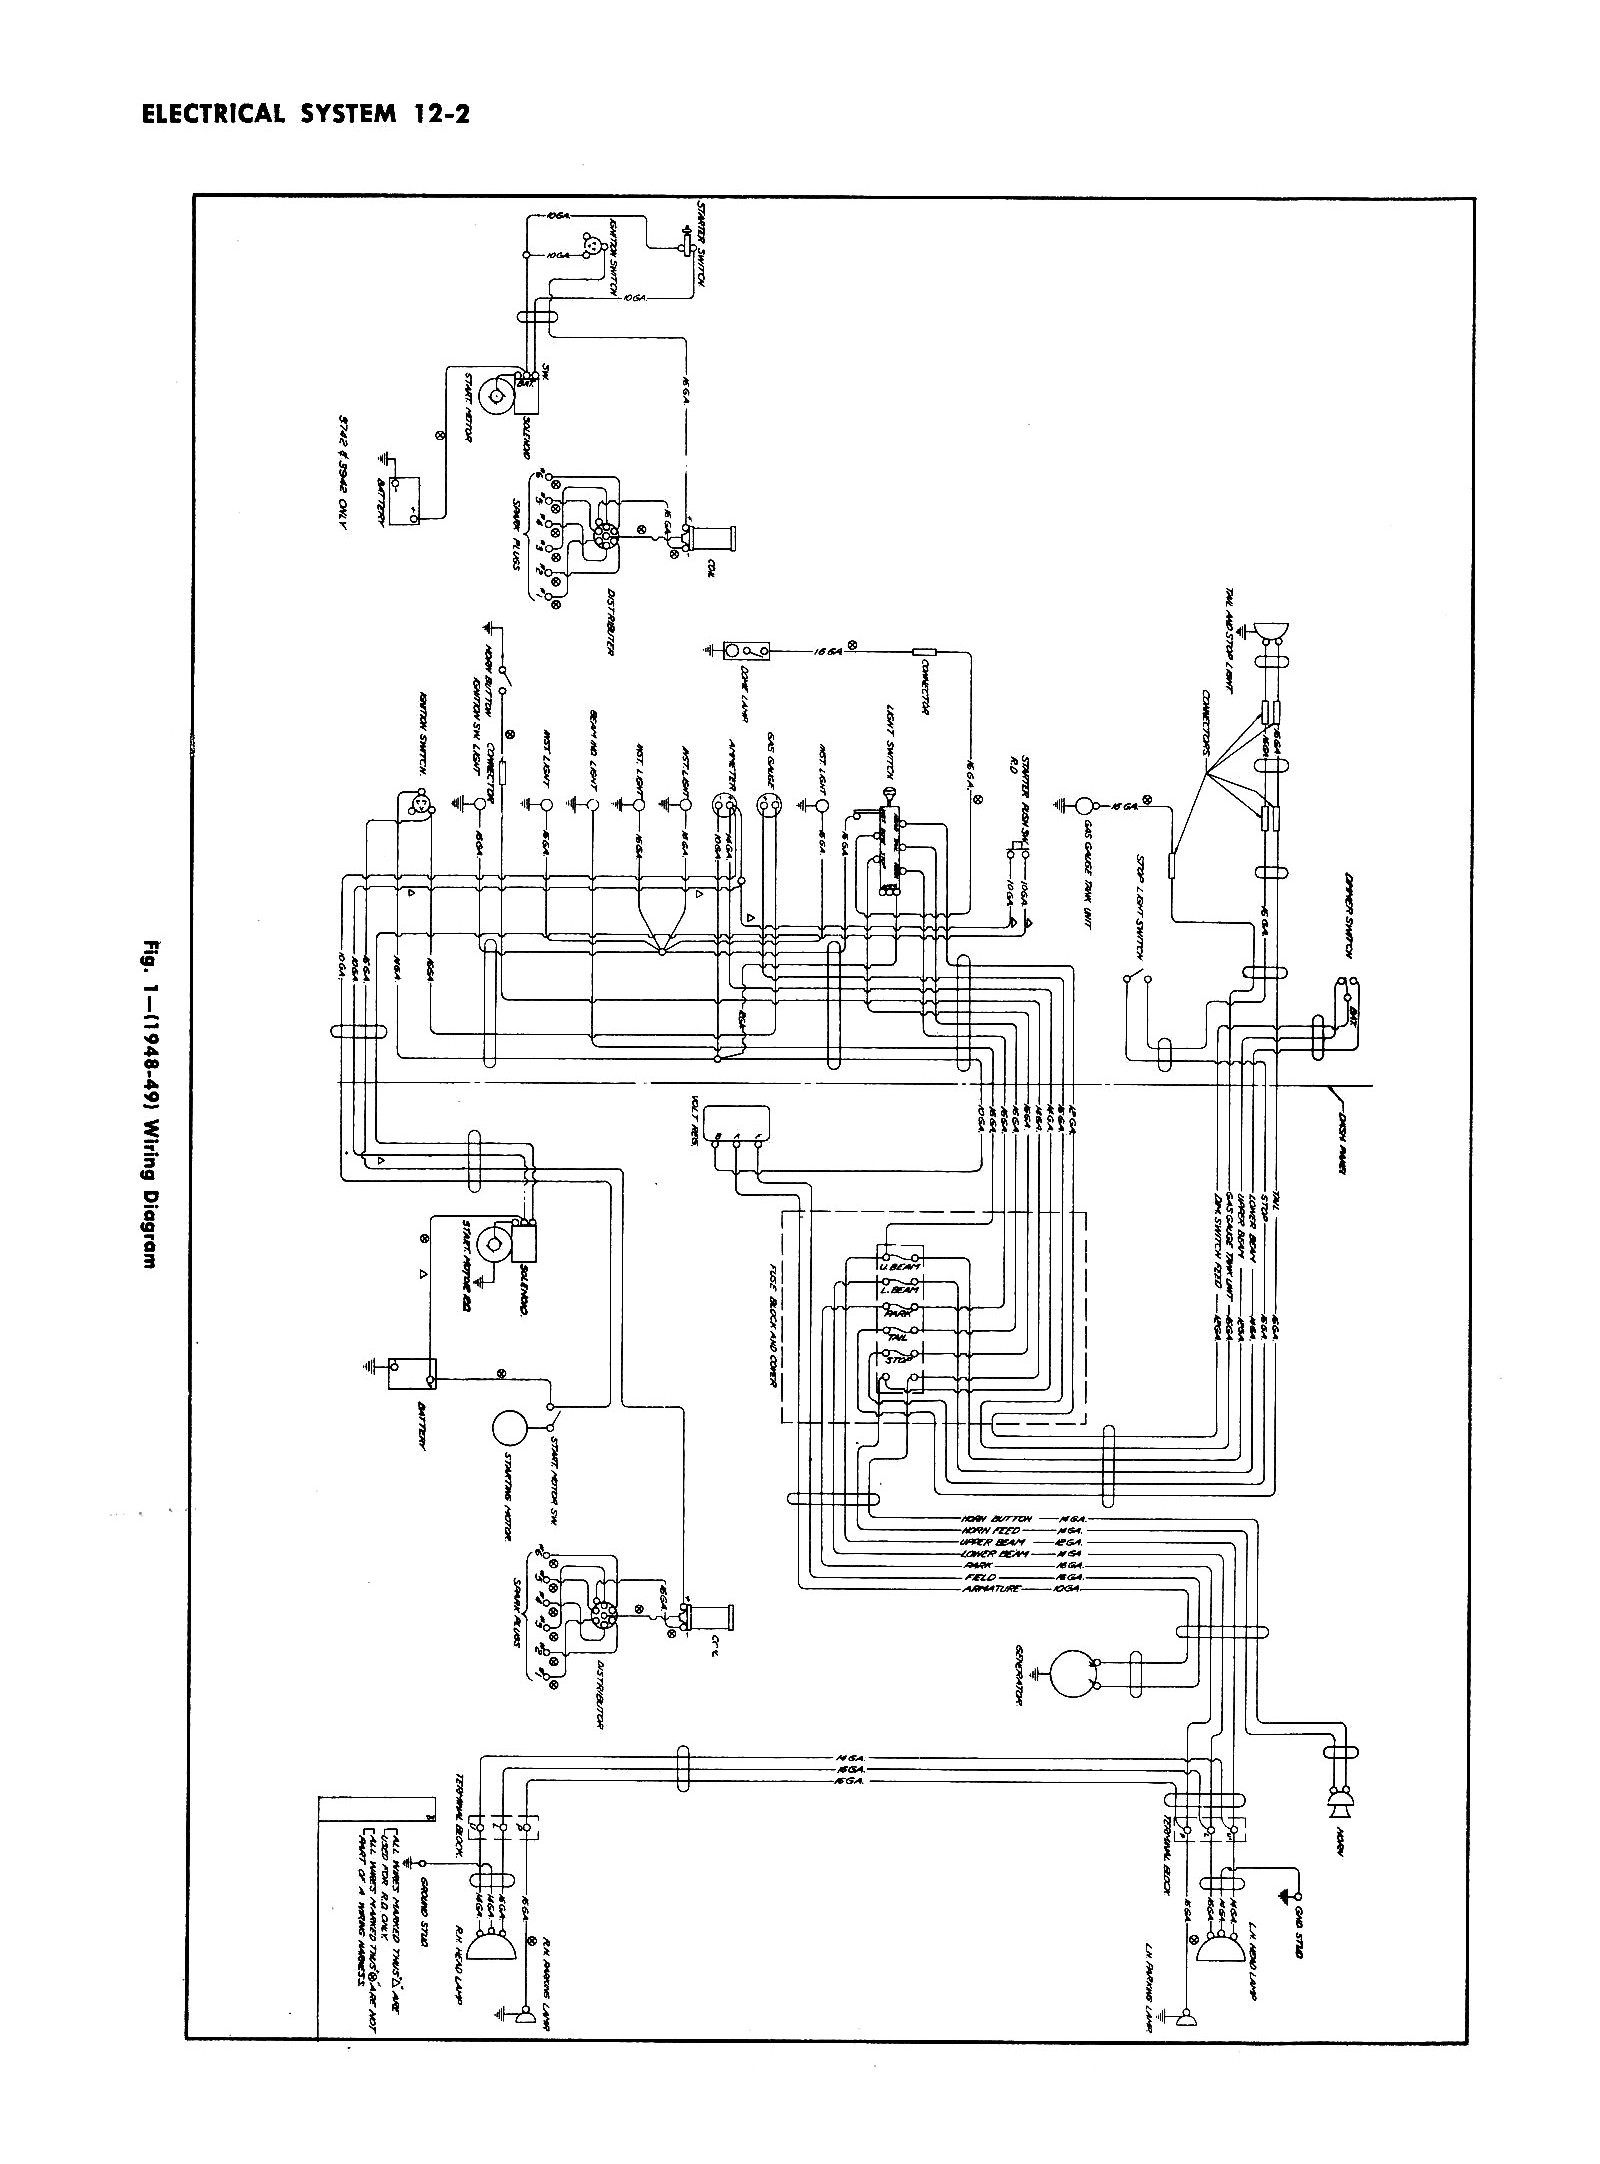 Chevy Wiring Diagrams 1968 Gm Radio Diagram 1948 Passenger Car